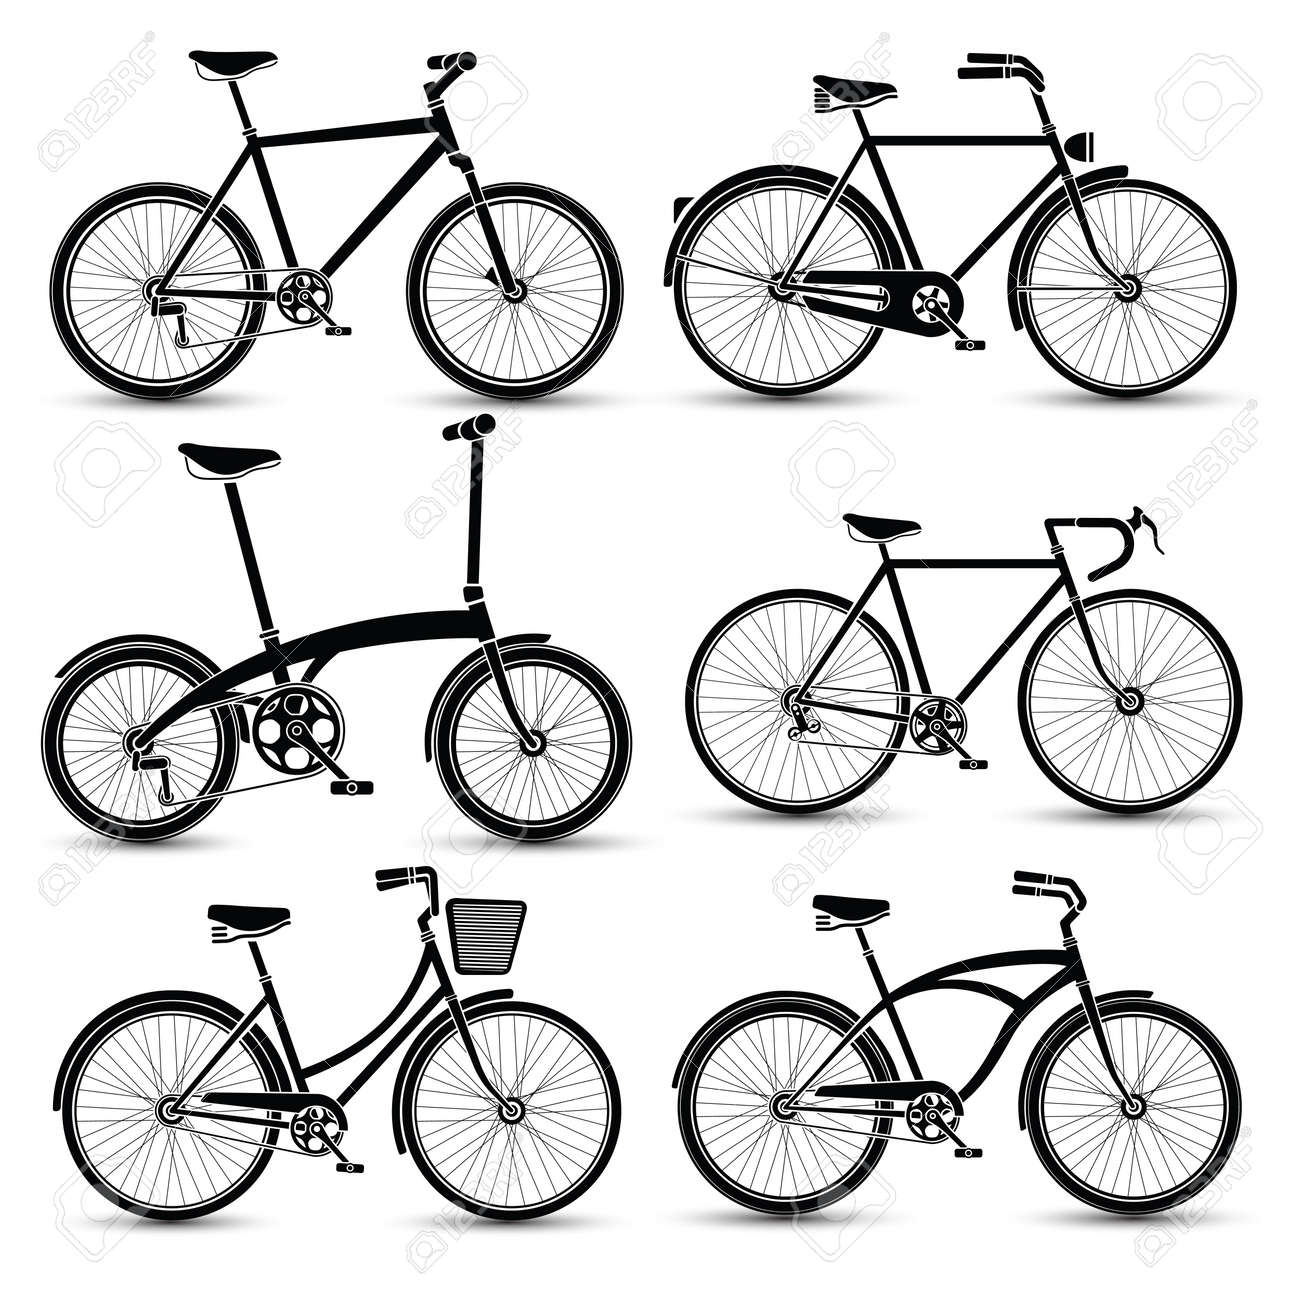 silhouette of Bicycles icon set vector illustration Stock Vector - 46035861